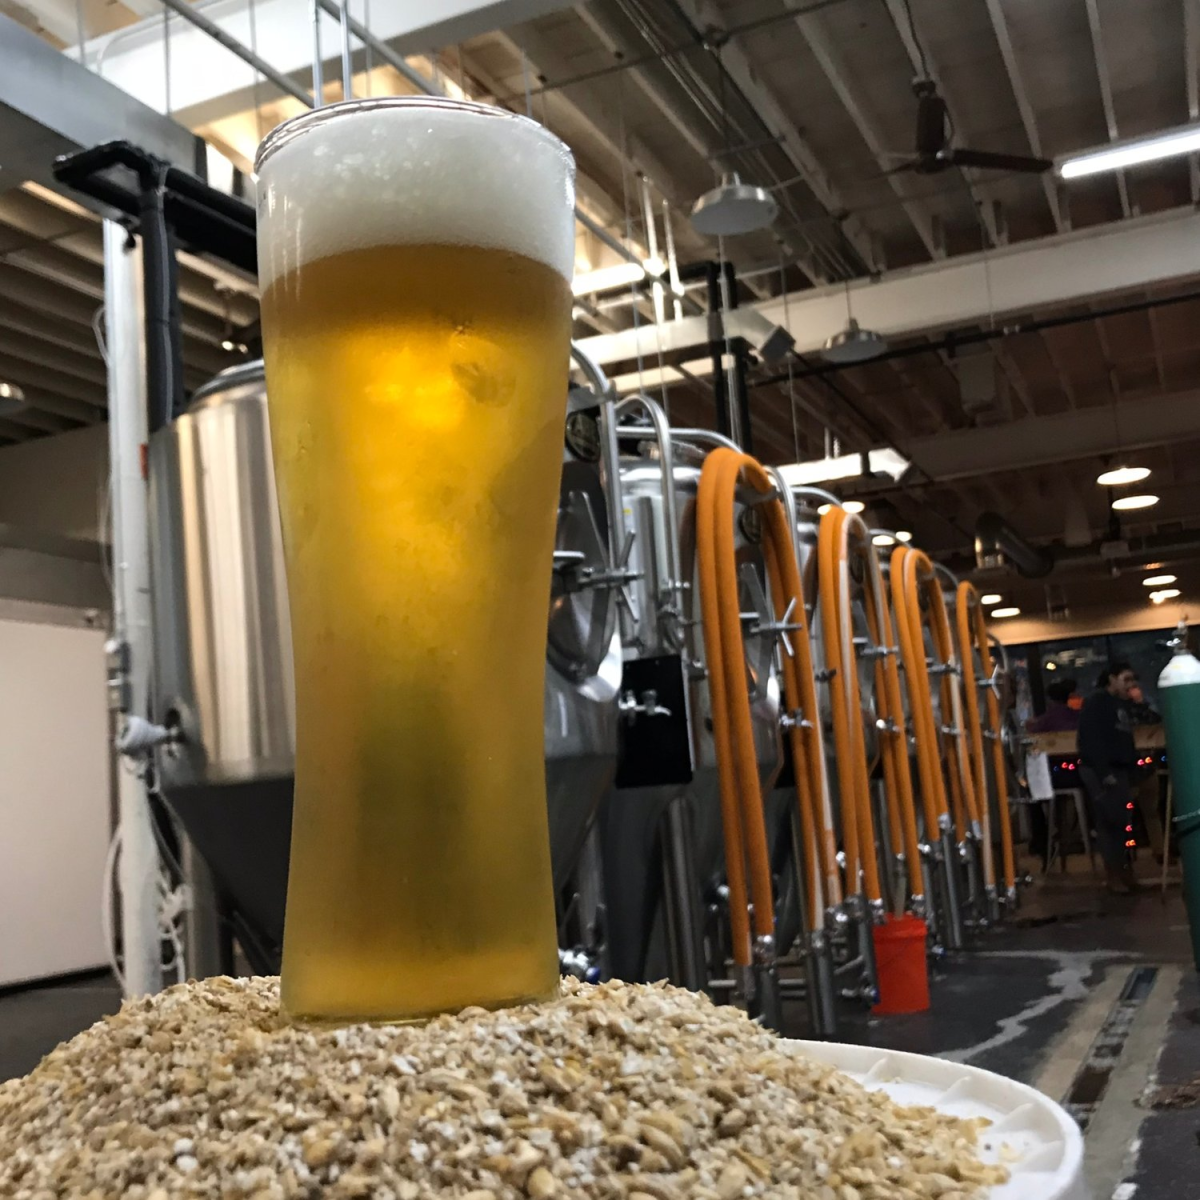 Settle Down Easy Brewing: No 1 Dry Hopped Kolsch